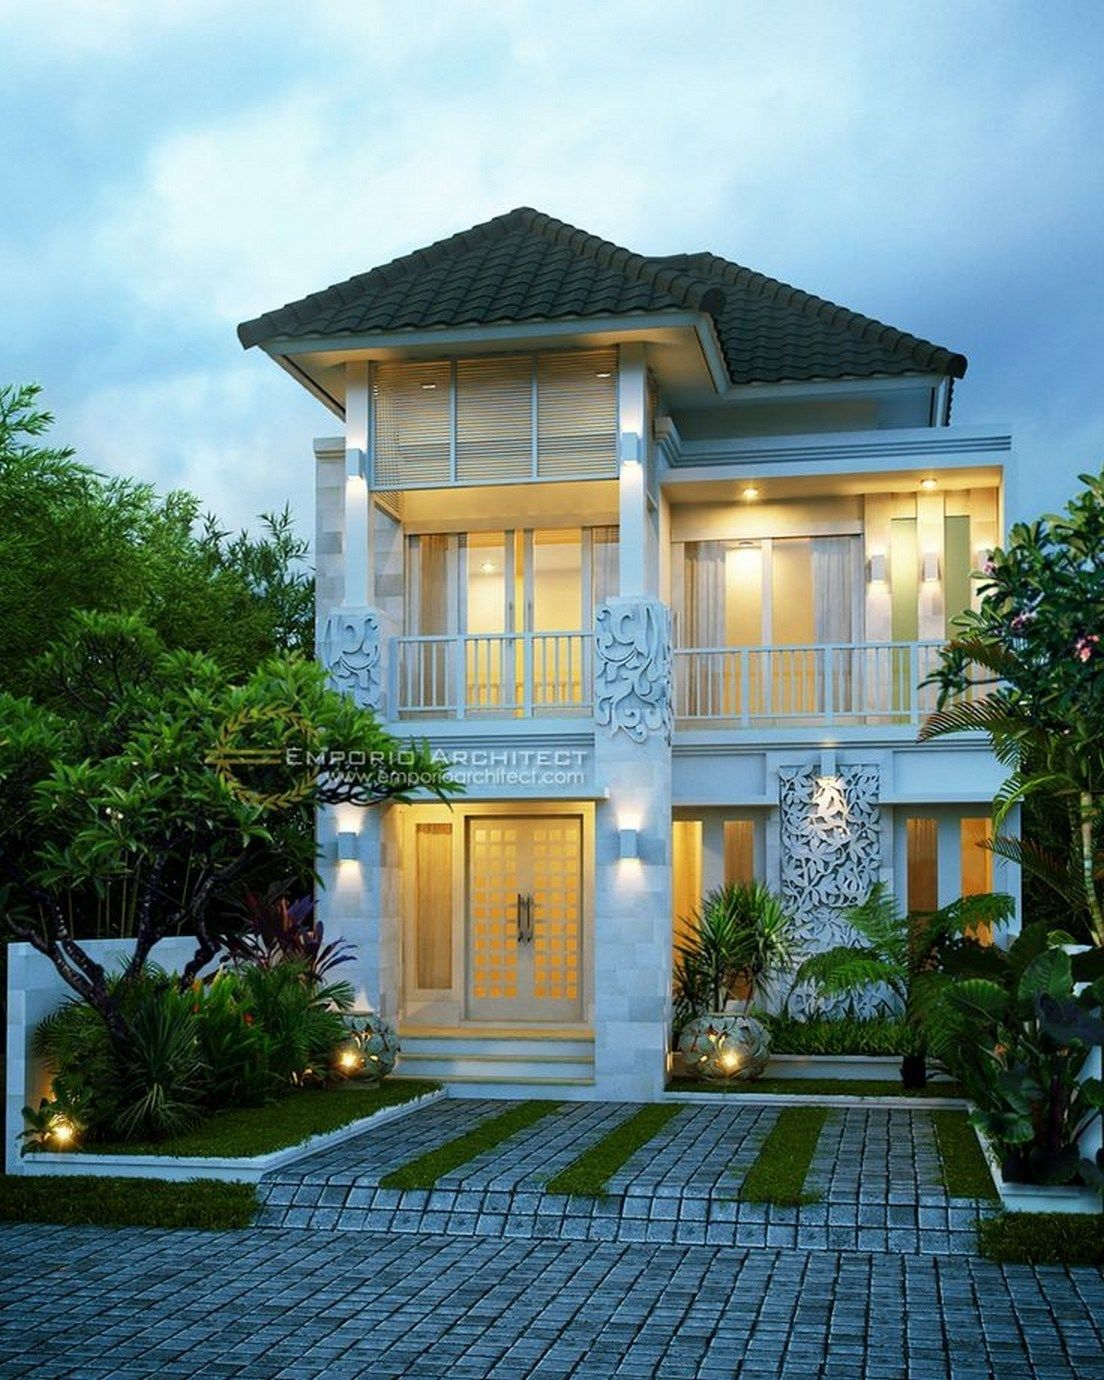 Home Design Ideas Front: 43 The Most Unique Modern Home Design In The World 2019 4